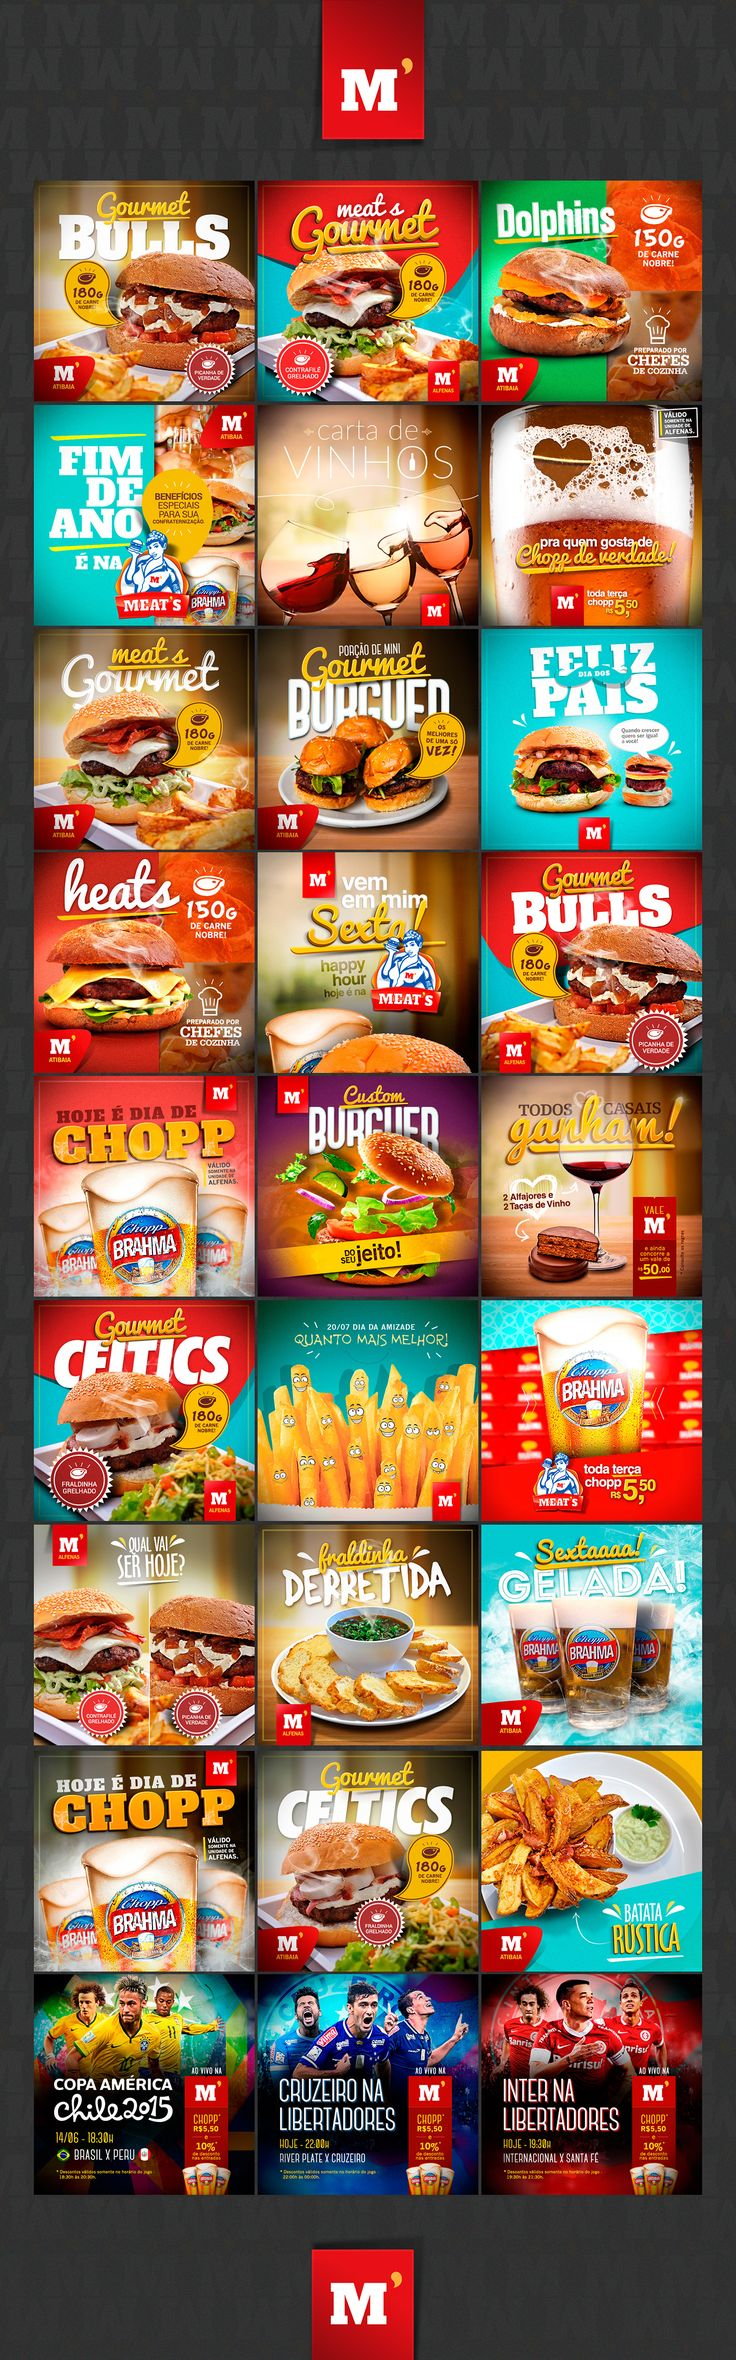 Meats Hamburgueria on Behance